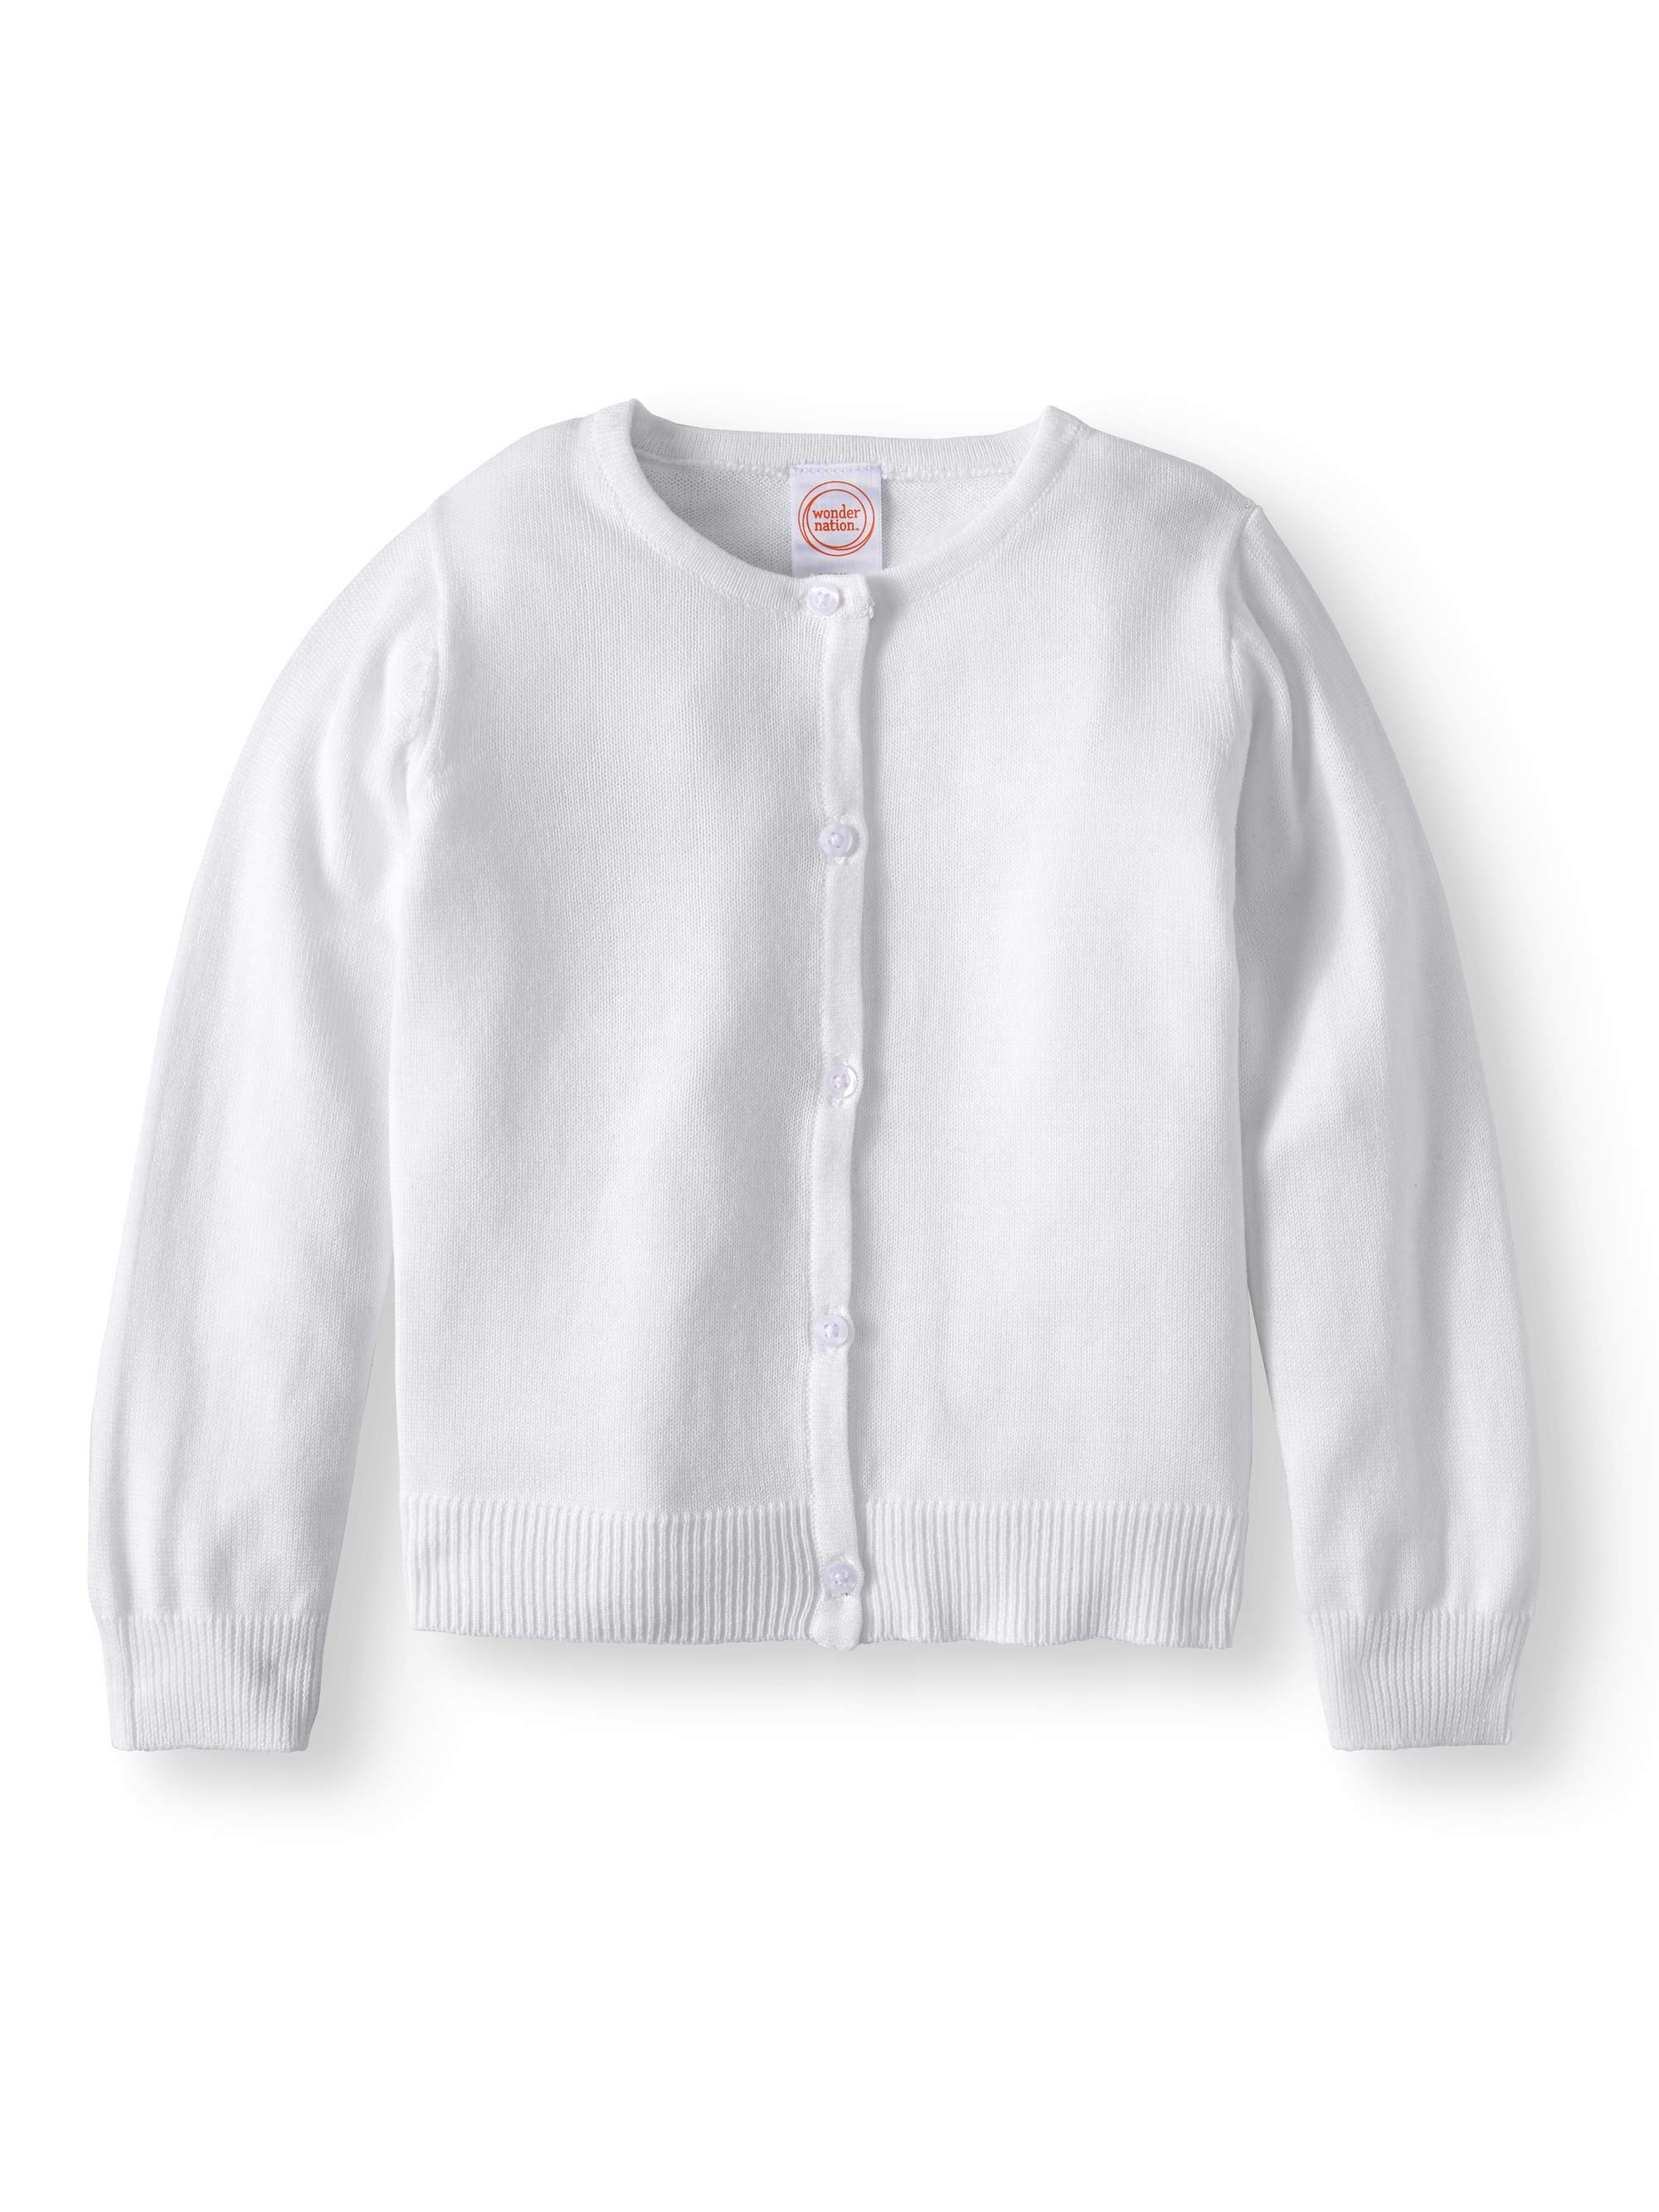 Toddler Girls School Uniform Knit Cardigan